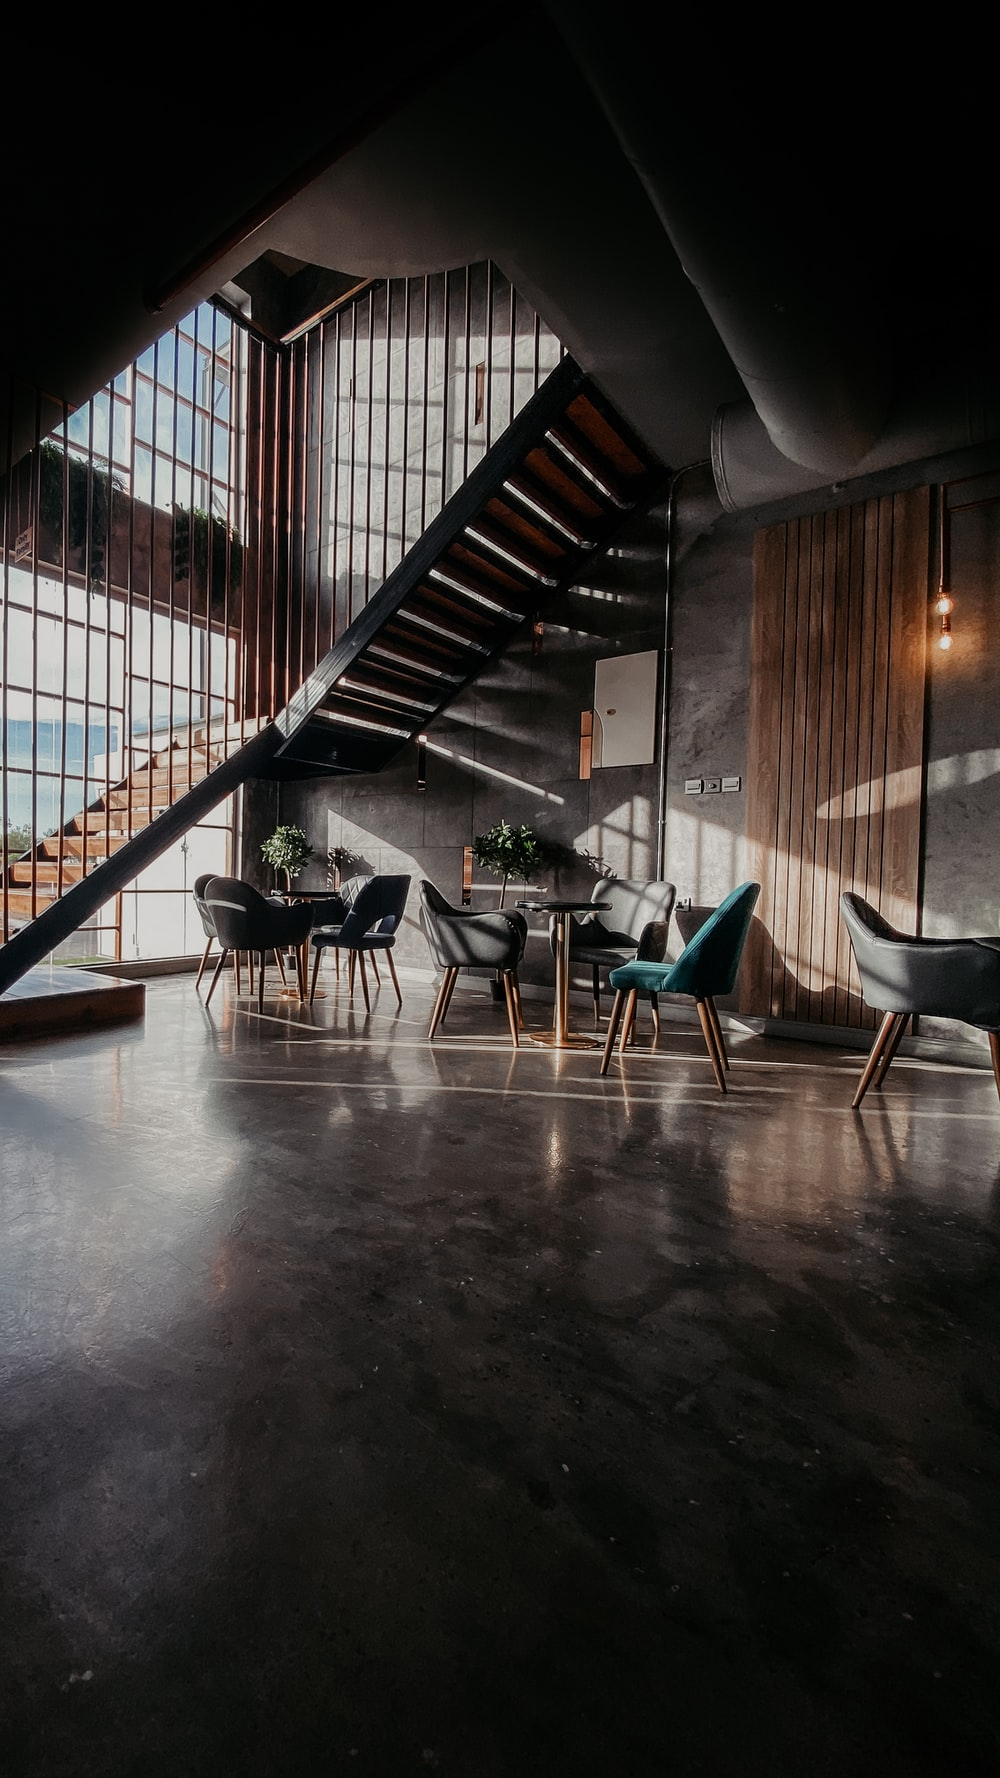 blue and black chairs on brown wooden floor